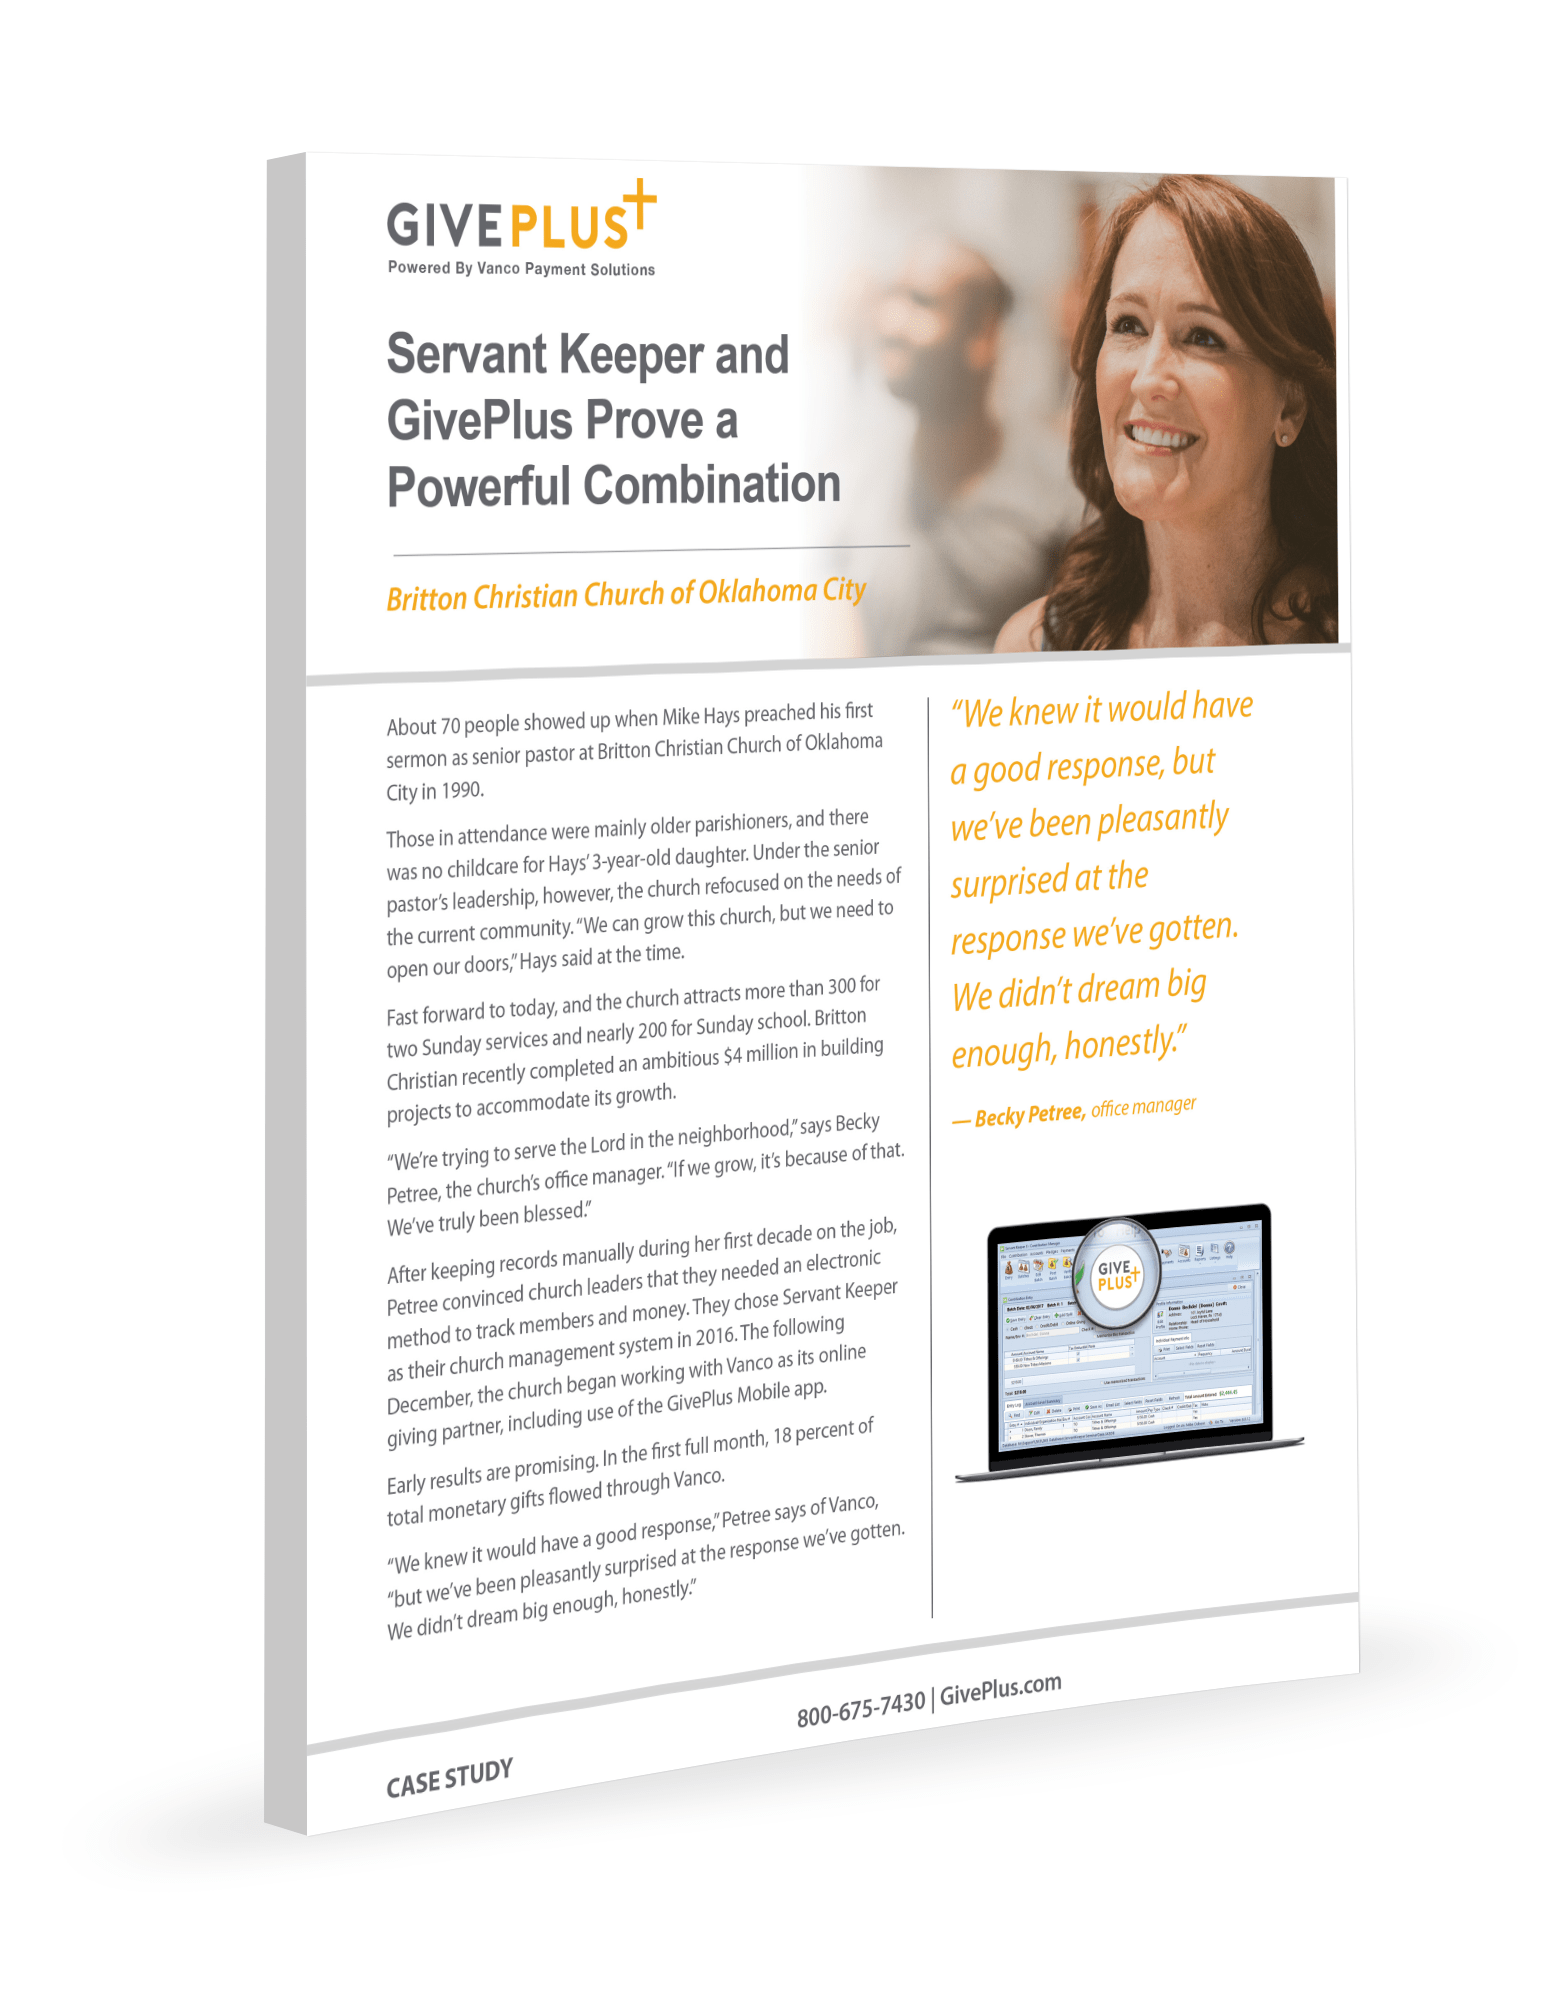 Servant Keeper and GivePlus Prove a Powerful Combination